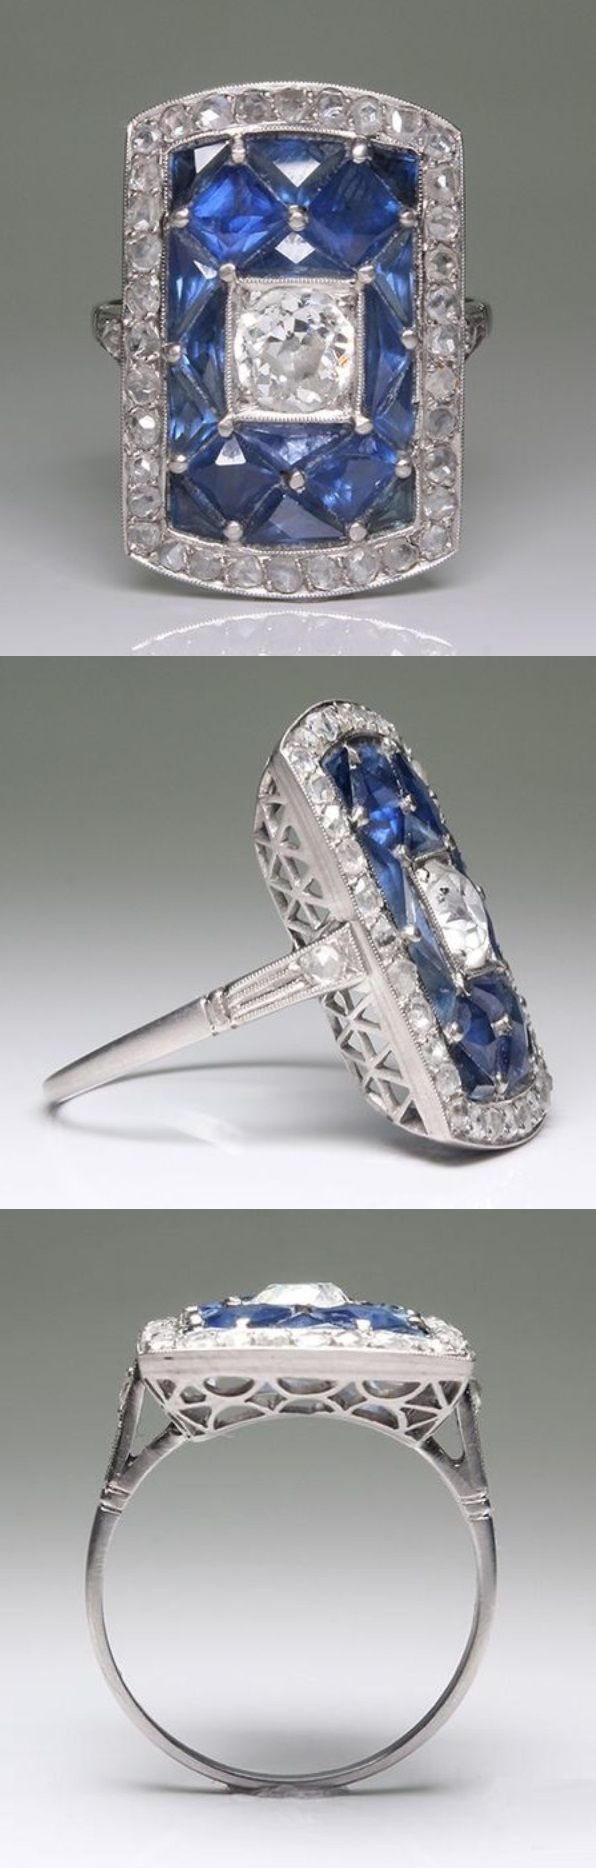 An Art Deco platinum, diamond and sapphire ring, 1920-35. #ArtDeco #ring